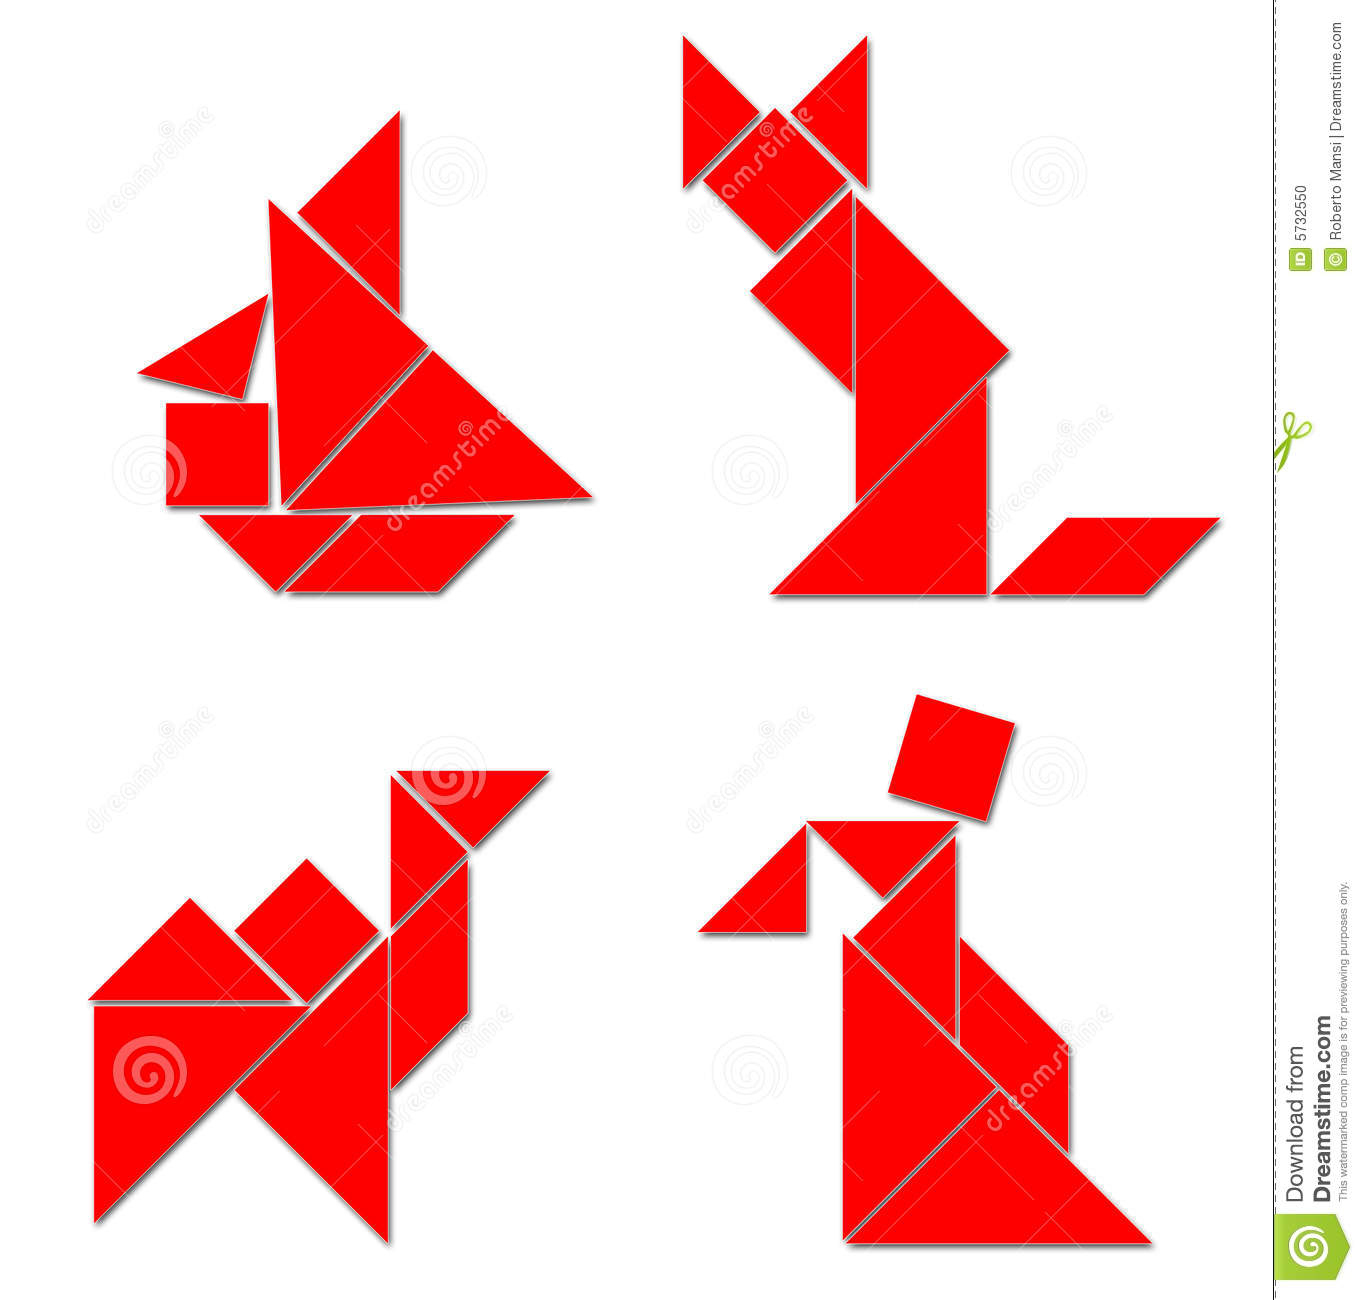 Tangram Classique - Divers Élém. Illustration Stock destiné Dessin Tangram